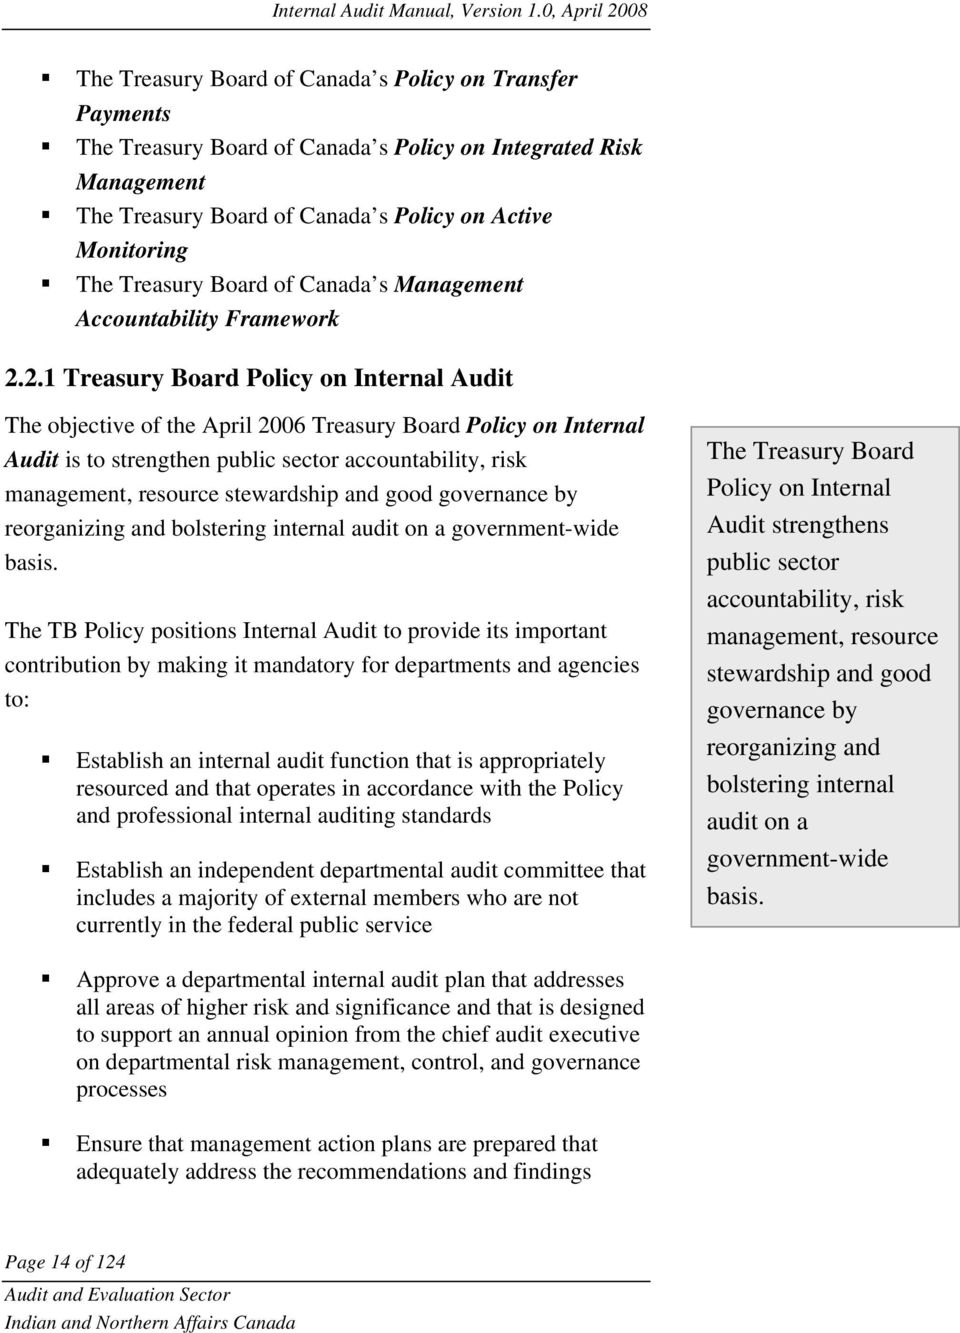 2.1 Treasury Board Policy on Internal Audit The objective of the April 2006 Treasury Board Policy on Internal Audit is to strengthen public sector accountability, risk management, resource